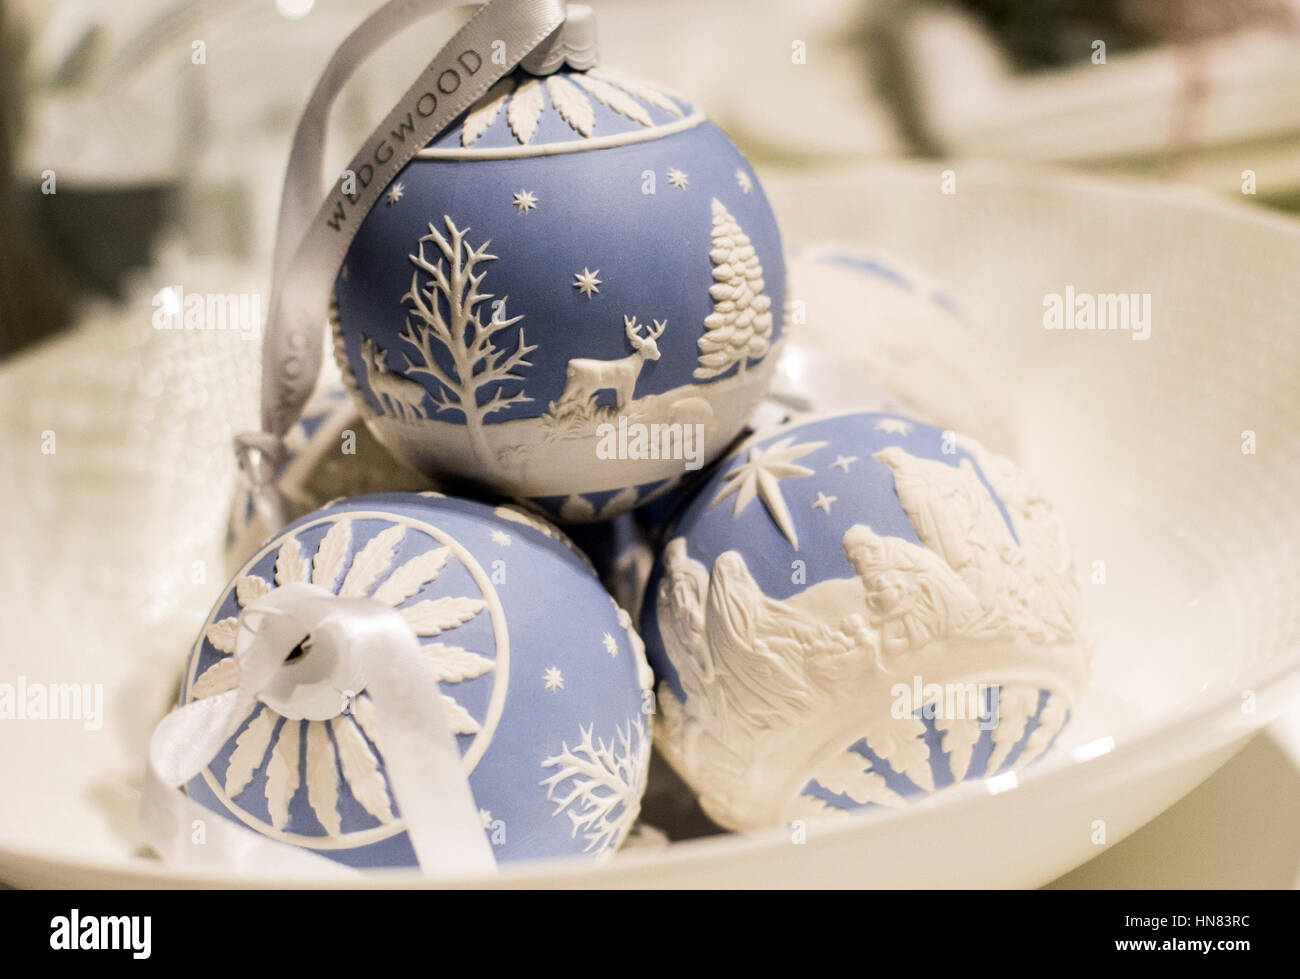 christmas ornaments in blue and white can be seen at the wedgewood company stand at the preview of the ambiente trade fair in frankfurt am main germany - Royals Christmas Ornament